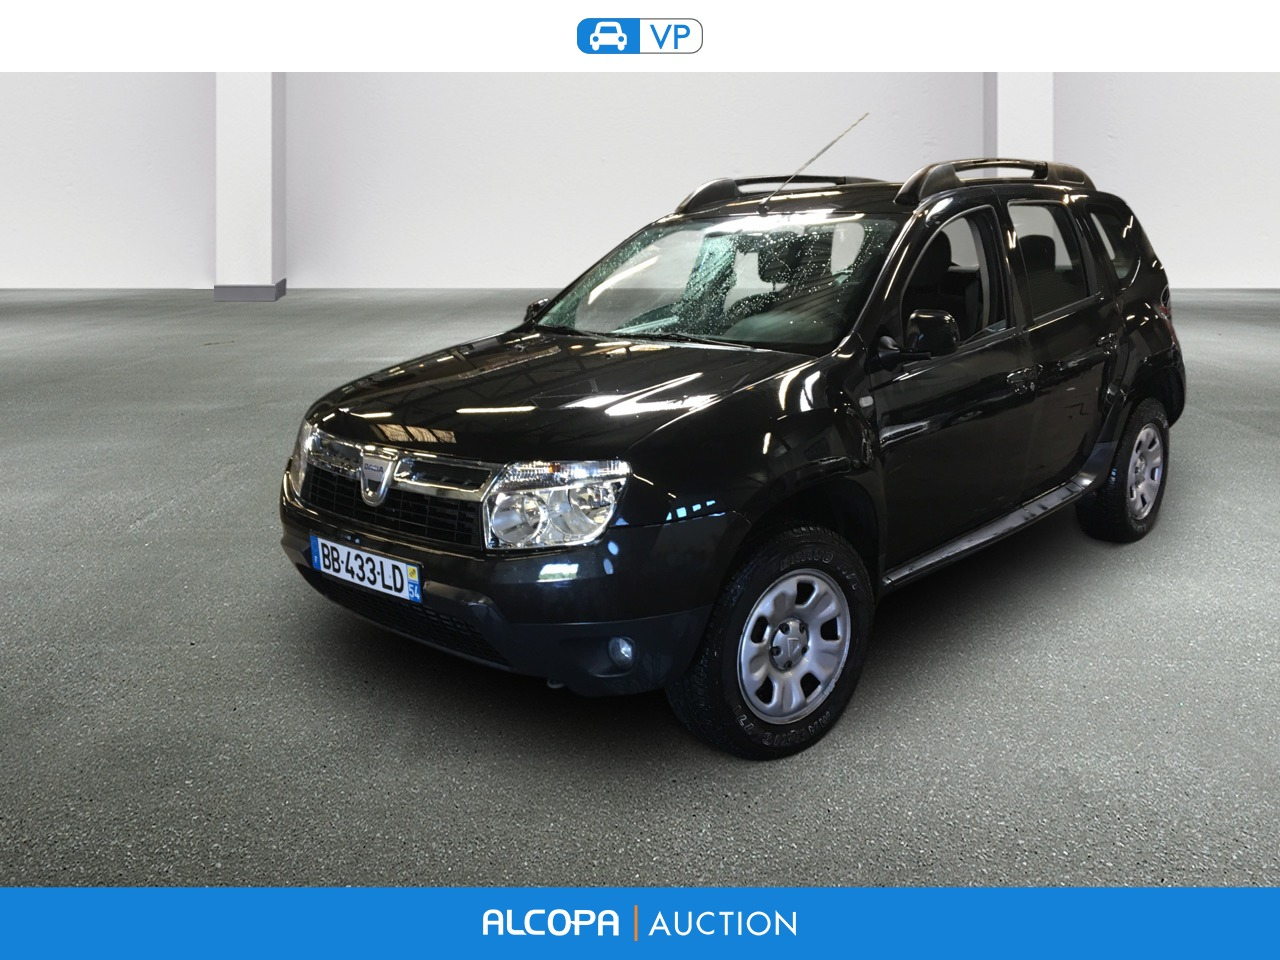 dacia duster duster 1 5 dci 110 4x2 laur ate alcopa auction. Black Bedroom Furniture Sets. Home Design Ideas